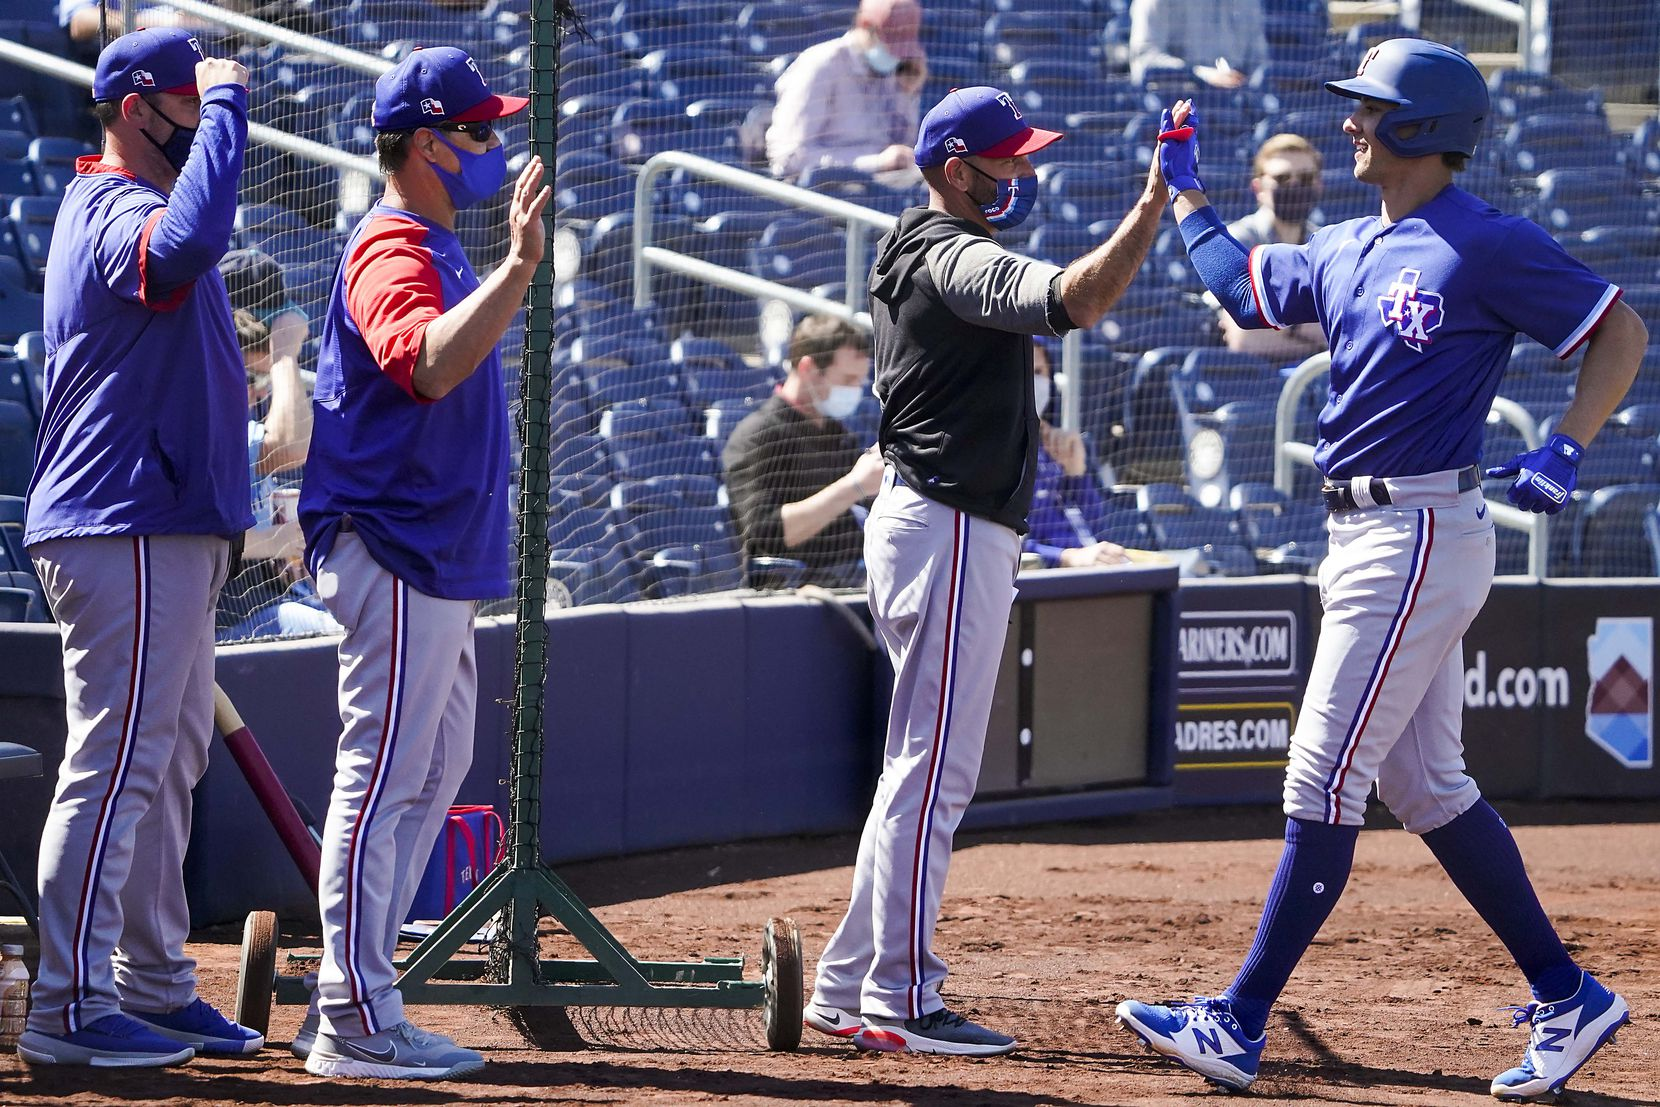 Texas Rangers outfielder Eli White (right) celebrates with manager Chris Woodward after hitting a 2-run home run during the second inning of a spring training game against the Seattle Mariners at Peoria Sports Complex on Wednesday, March 10, 2021, in Peoria, Ariz.